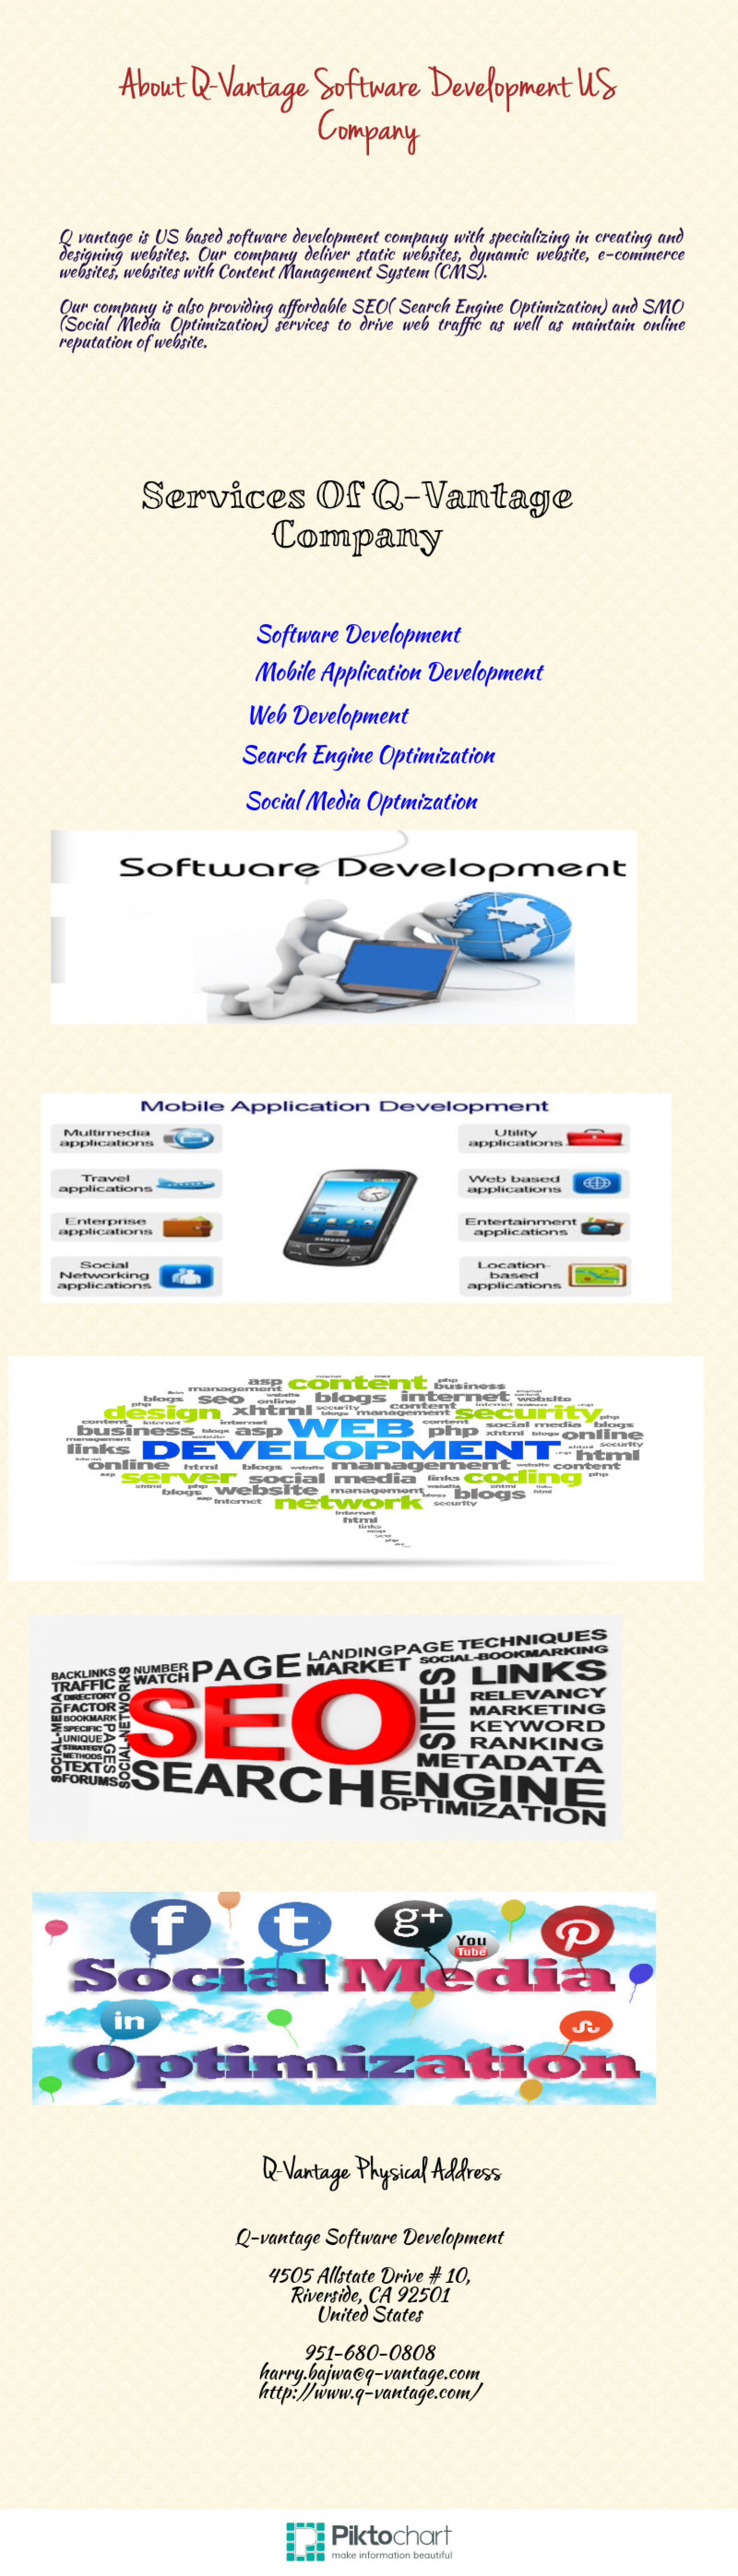 About Q-Vantage Software Development US Company Infographic